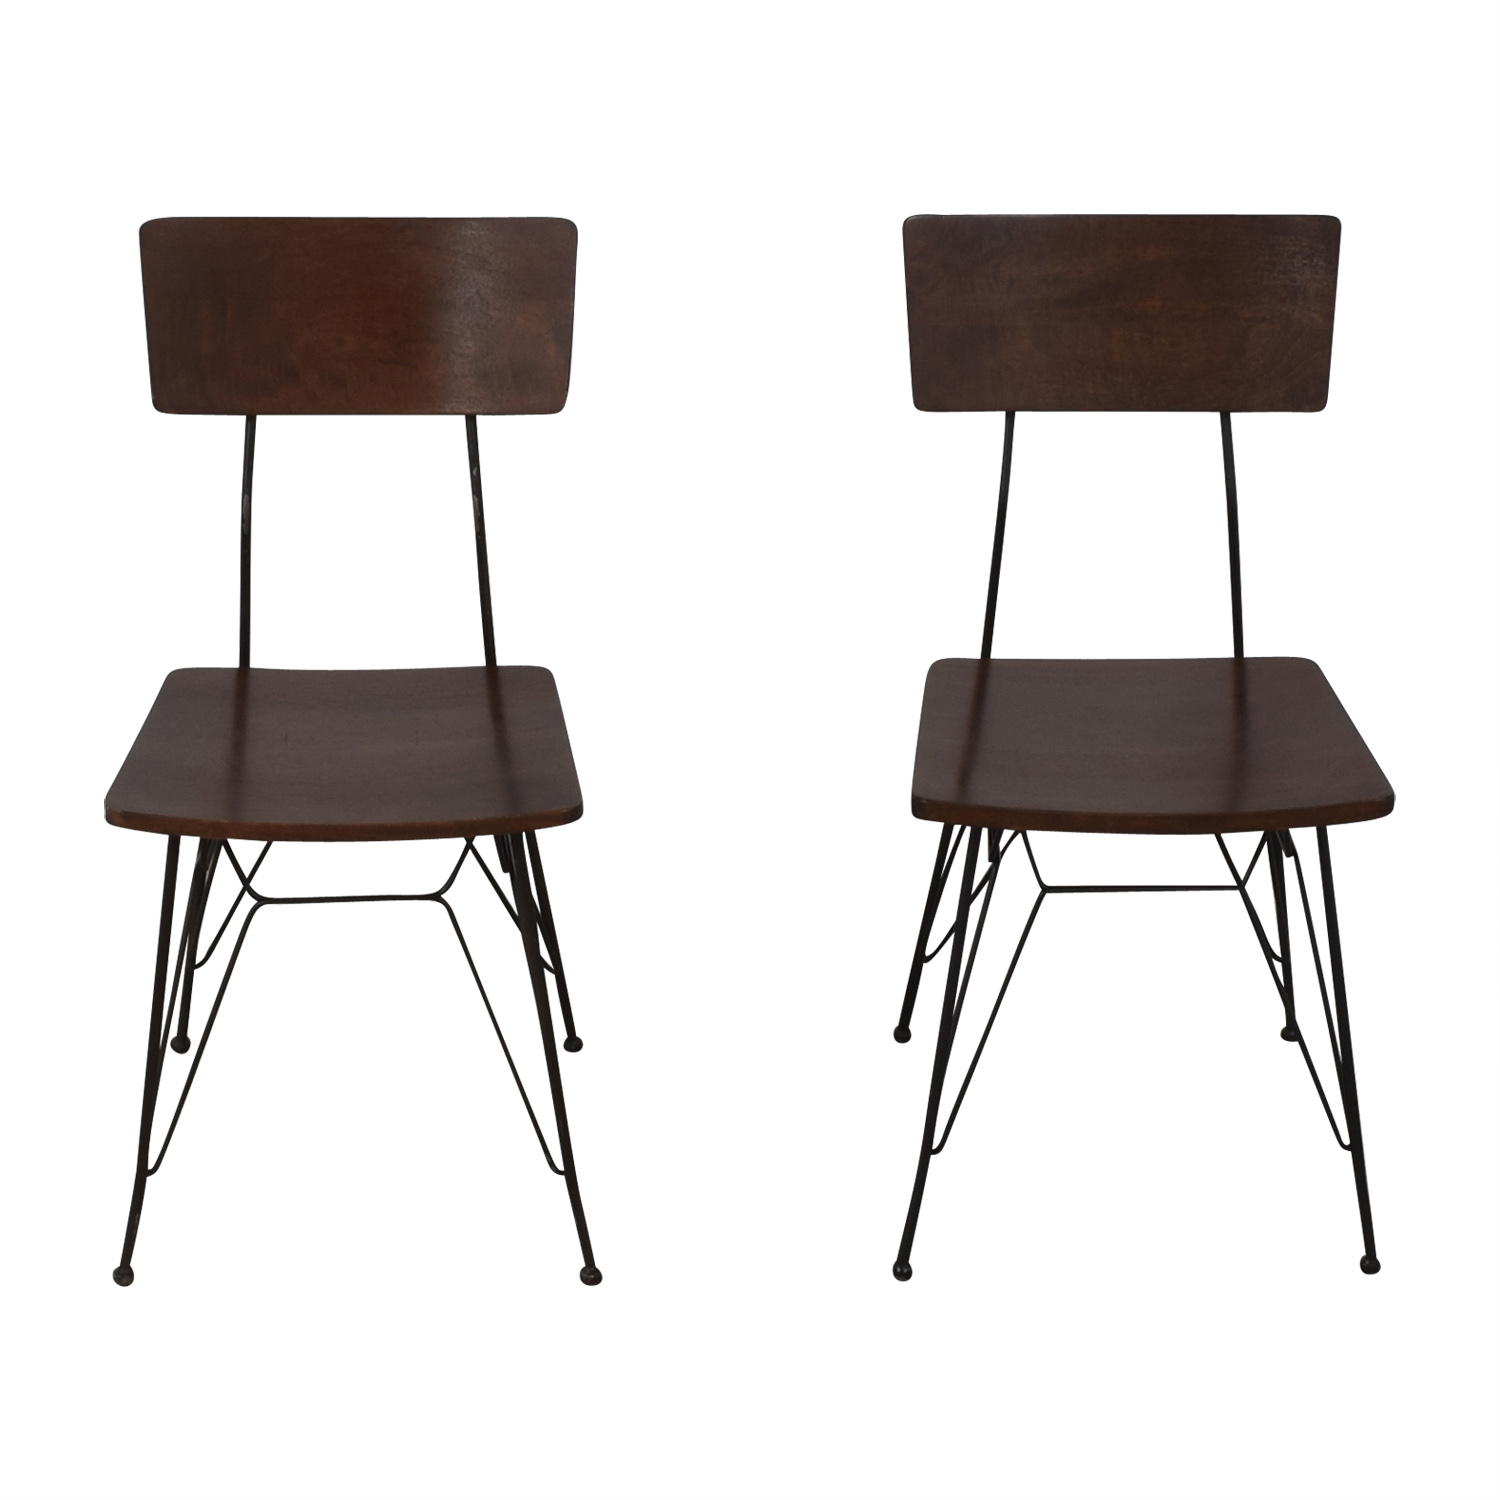 Crate & Barrel Crate & Barrel Elston Dining Chairs on sale